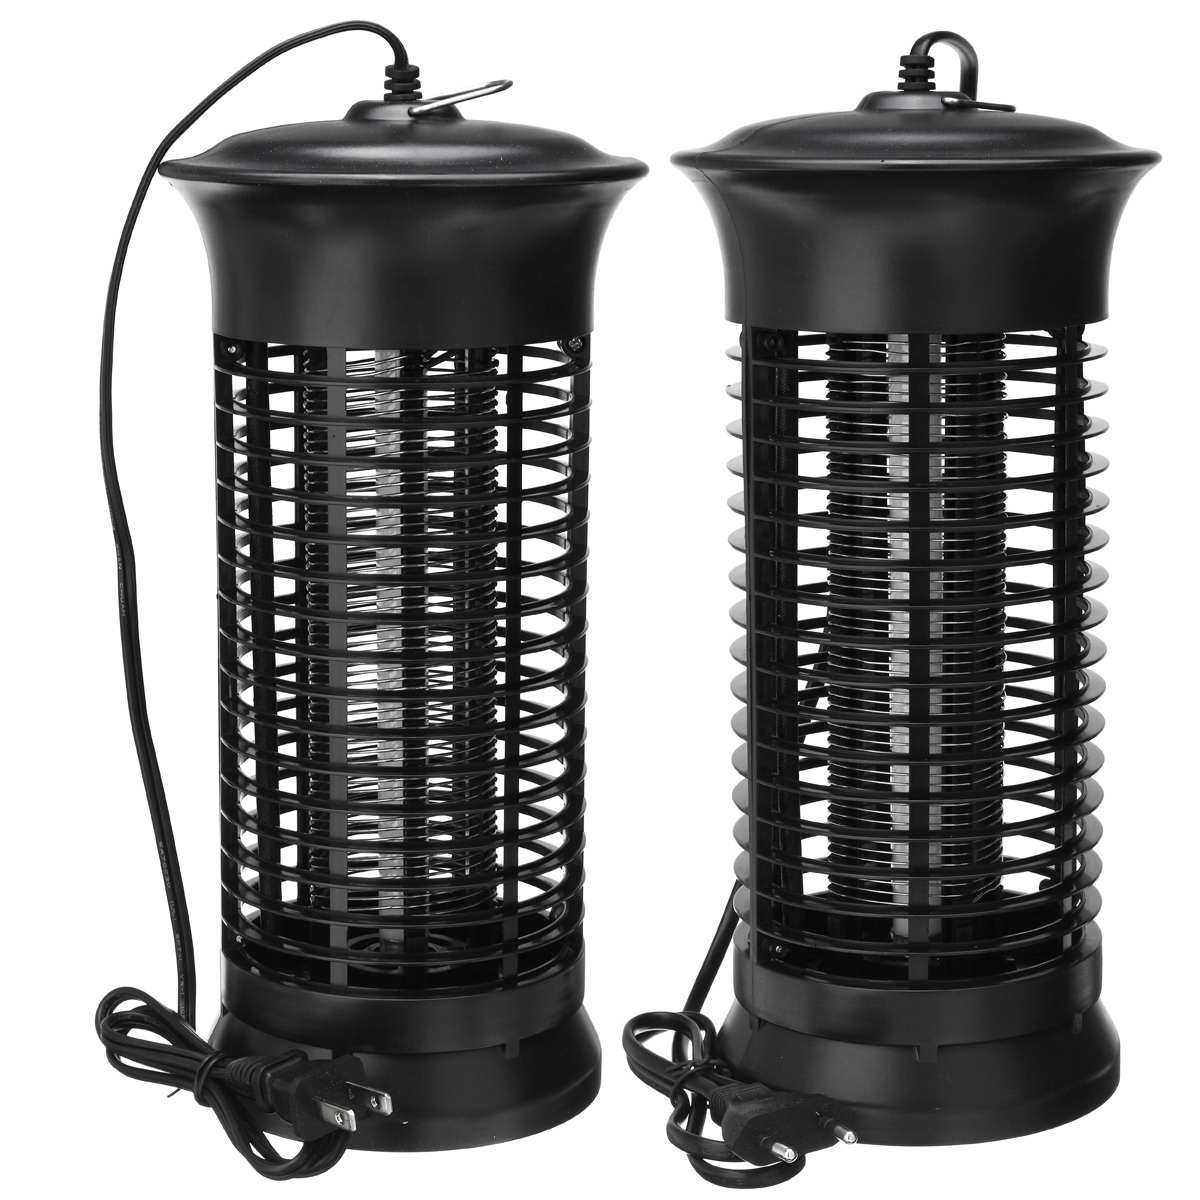 6W Electic Mosquito Killer Lamp Insect Fly Bug Zapper Trap Pest Control Photocatalyst Mosquito Dispeller Repellents 110v/220v6W Electic Mosquito Killer Lamp Insect Fly Bug Zapper Trap Pest Control Photocatalyst Mosquito Dispeller Repellents 110v/220v